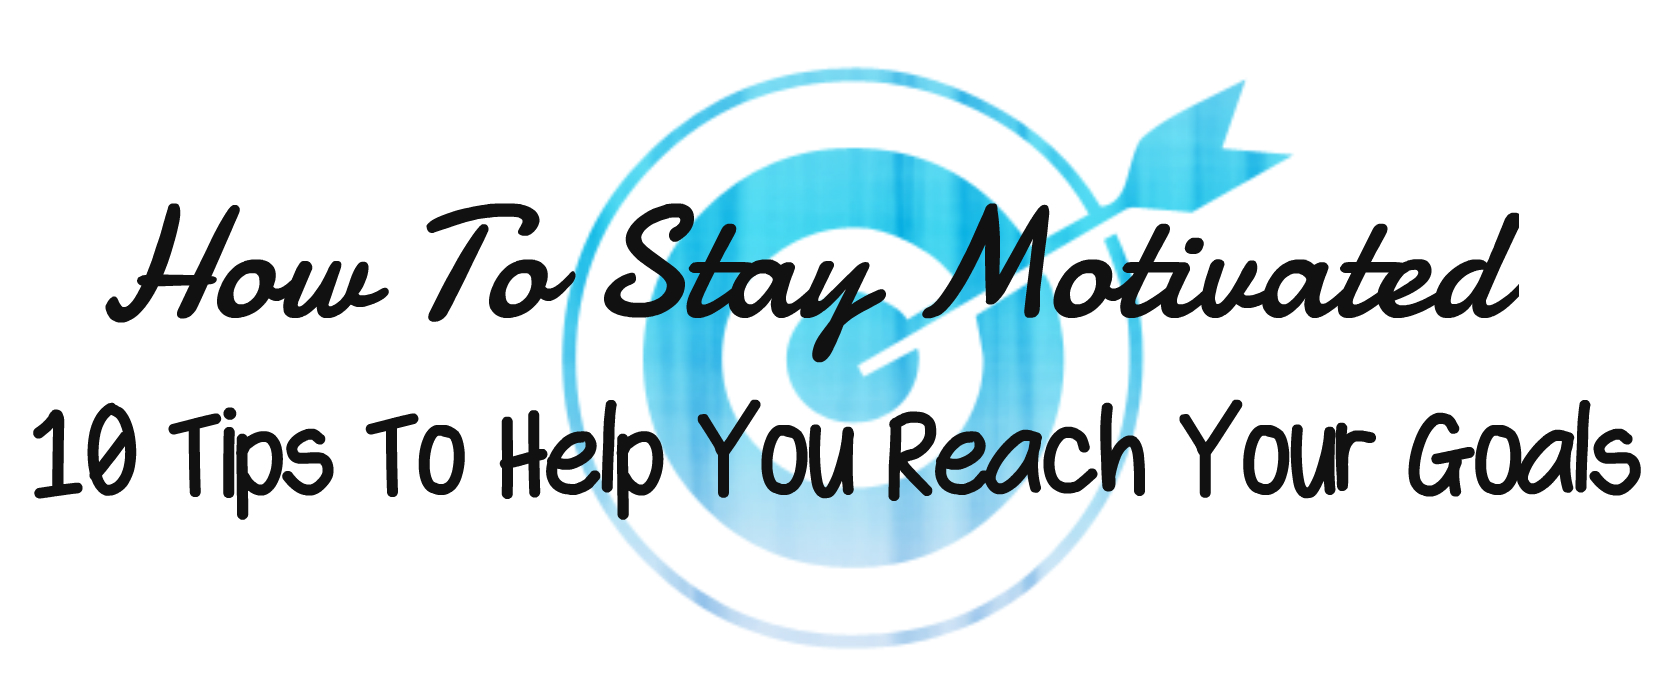 tips for staying motivated, how to find motivation, how to reach goals, how to set goals, how to achieve goals, how to accomplish anything, how to become successful, reaching for goals, reaching goals tips